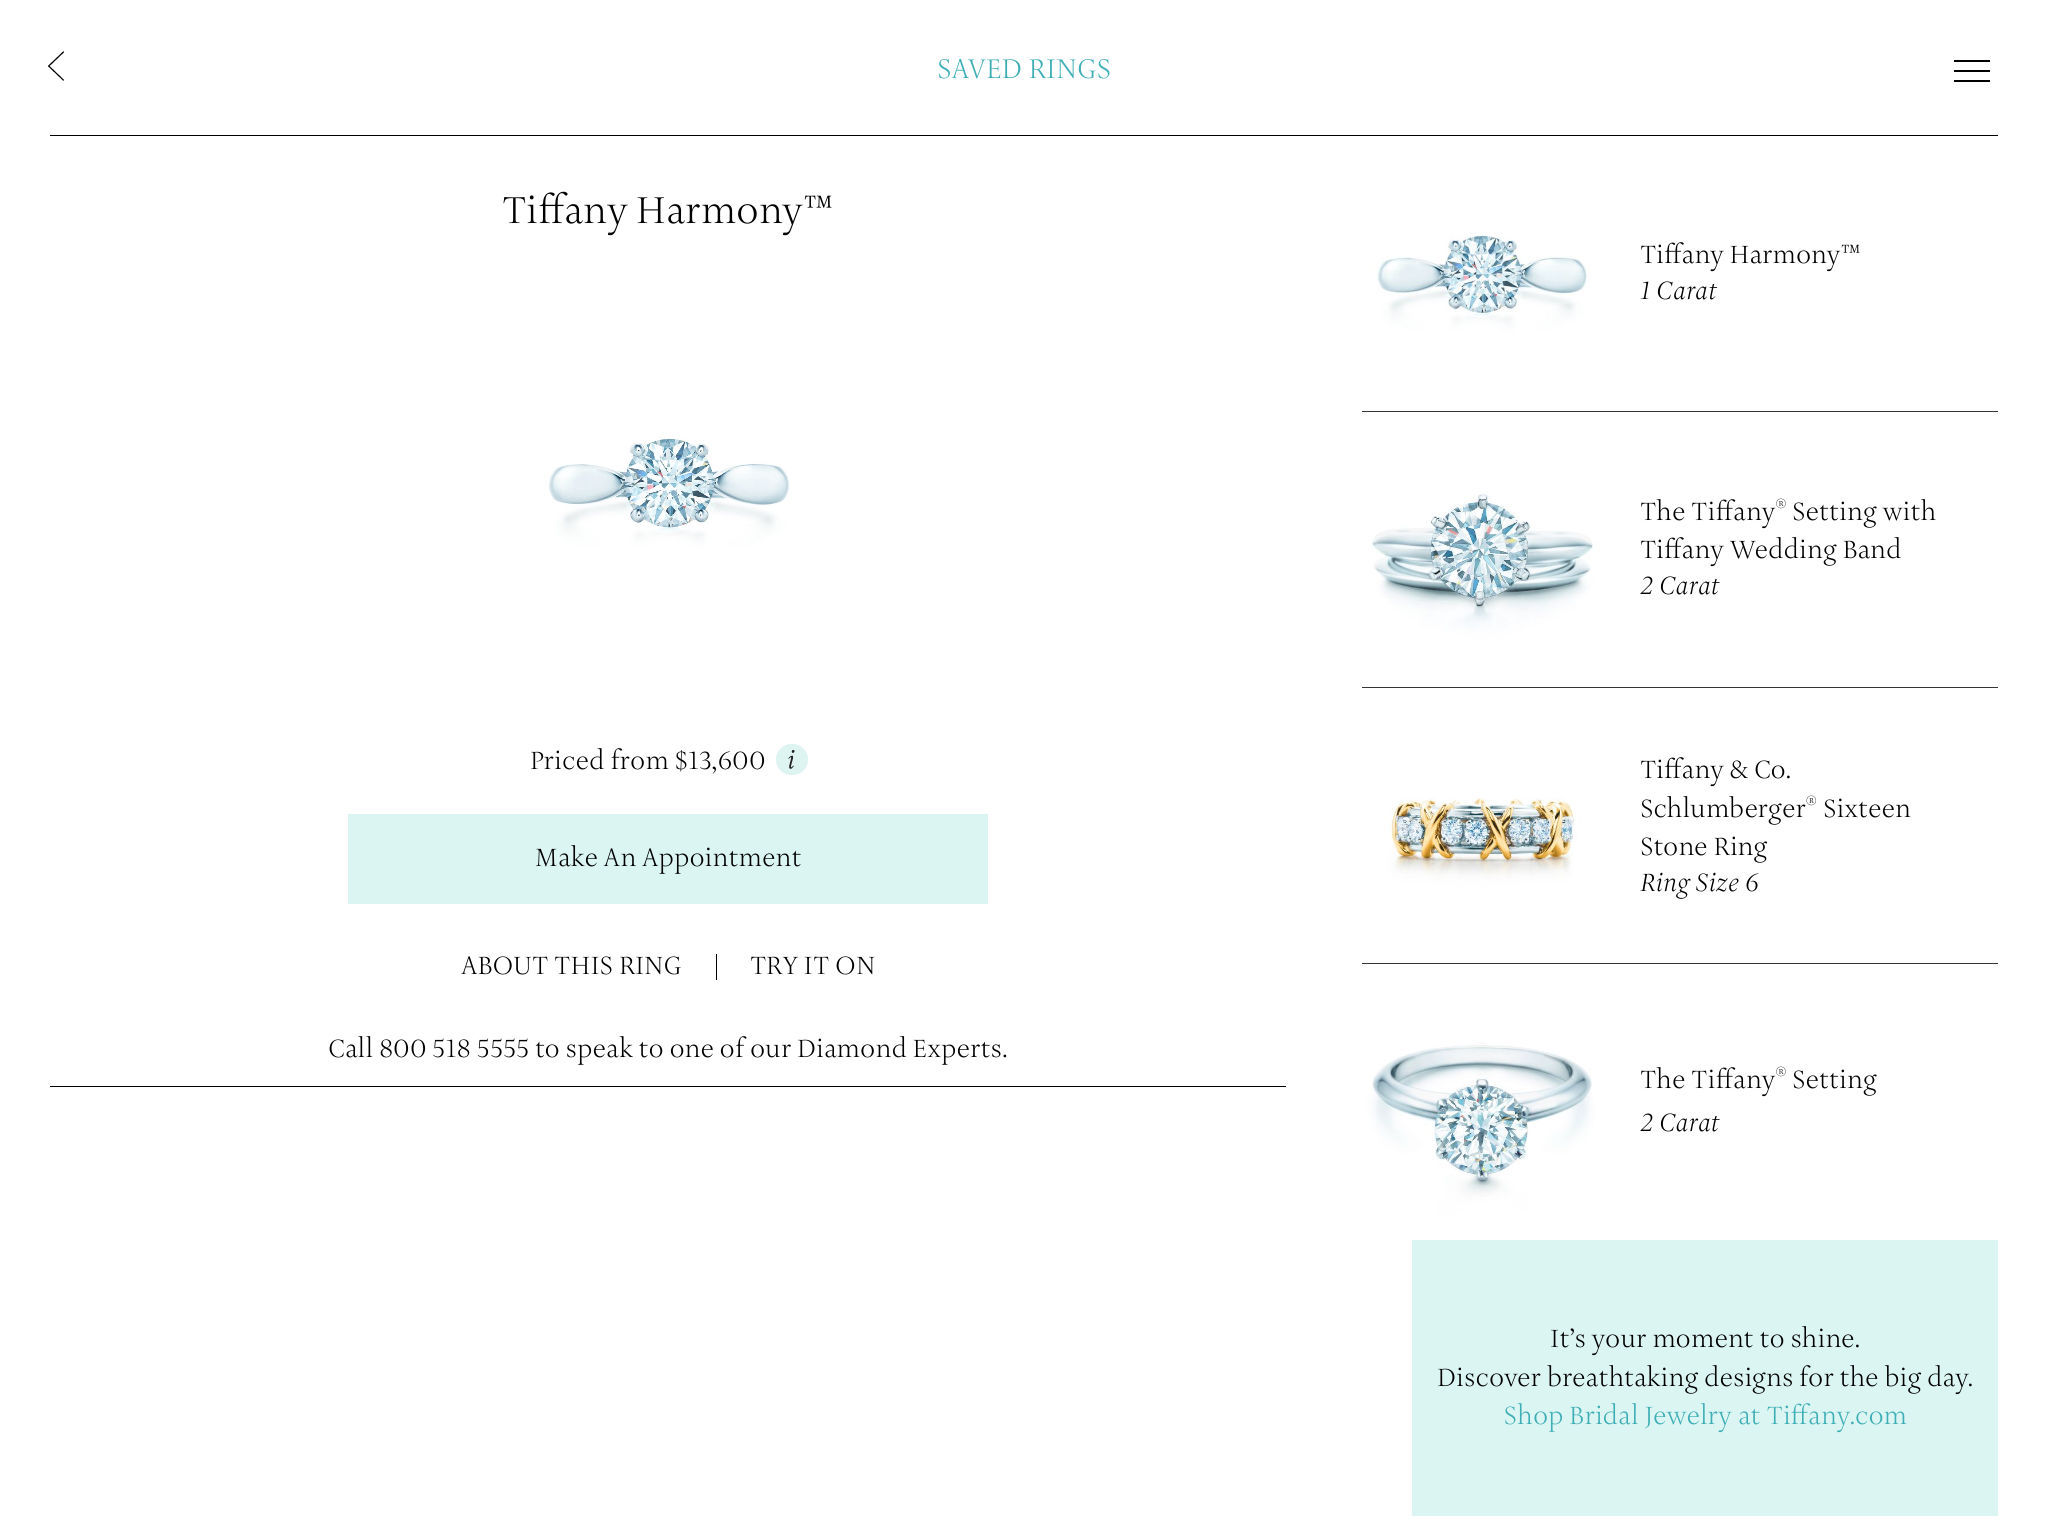 Tiffany Co Engagement Ring Finder App Ranking and Store Data